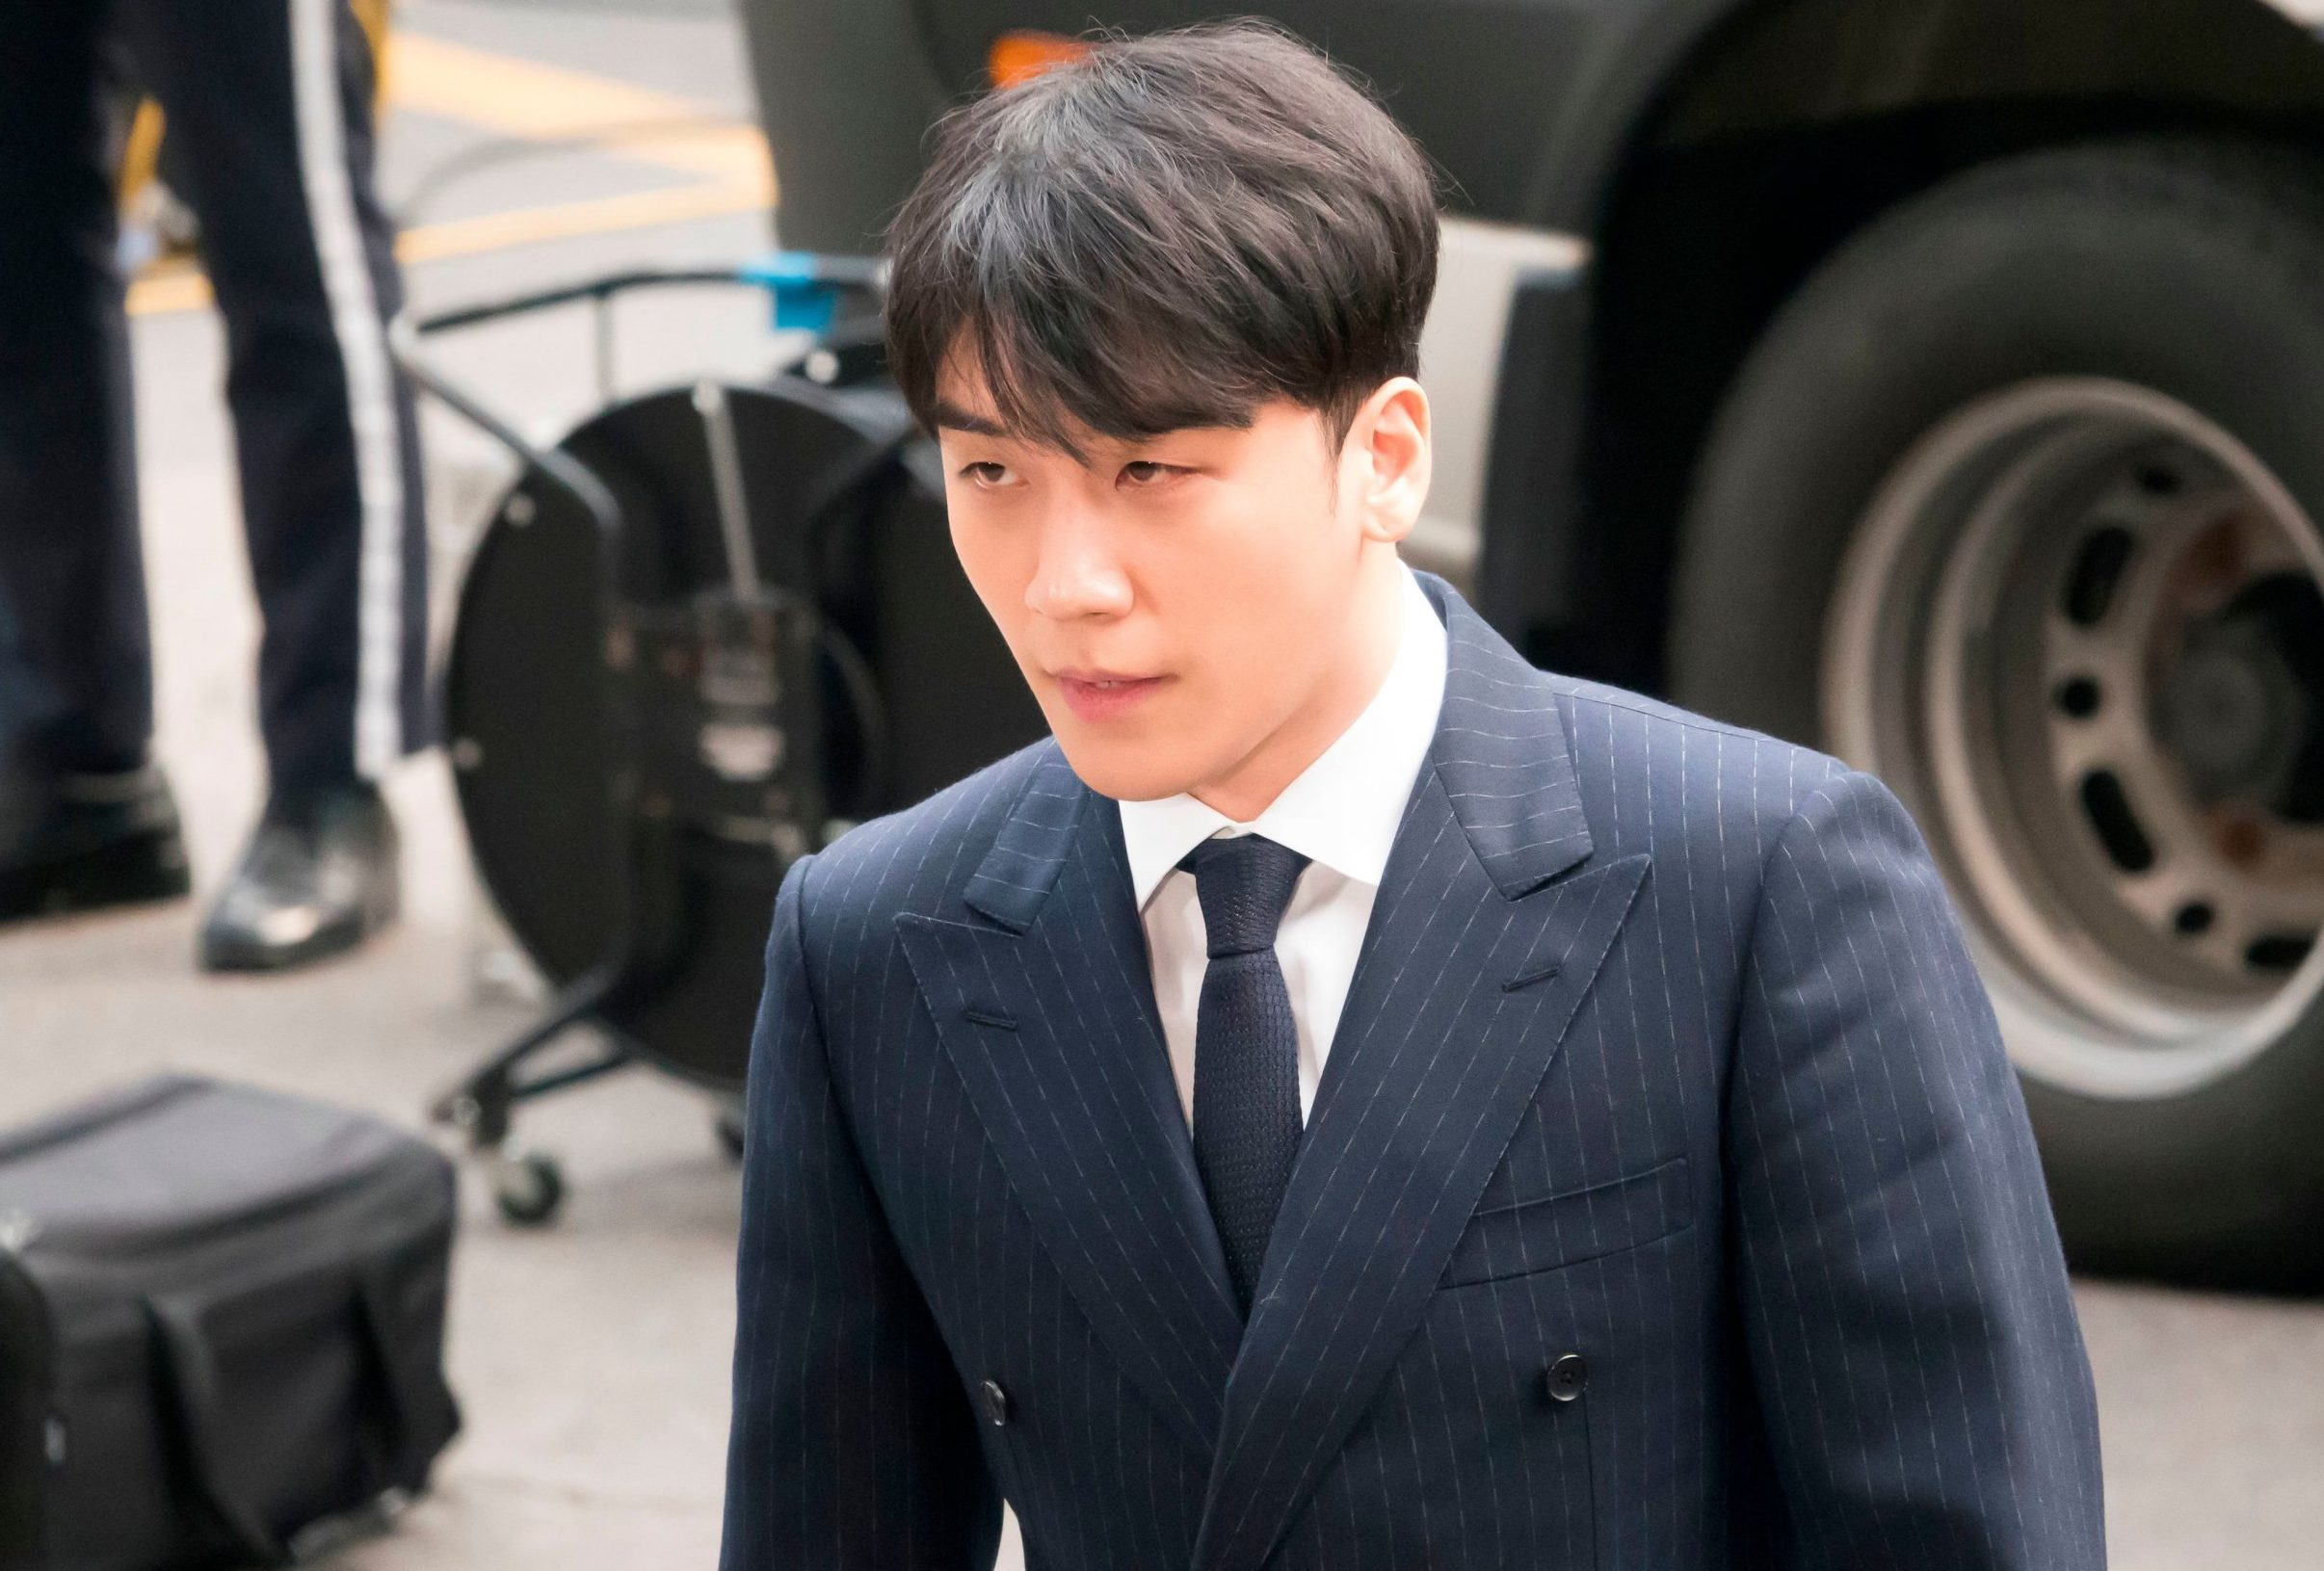 Police to issue arrest warrant for Seungri this week as Burning Sun investigation wraps up